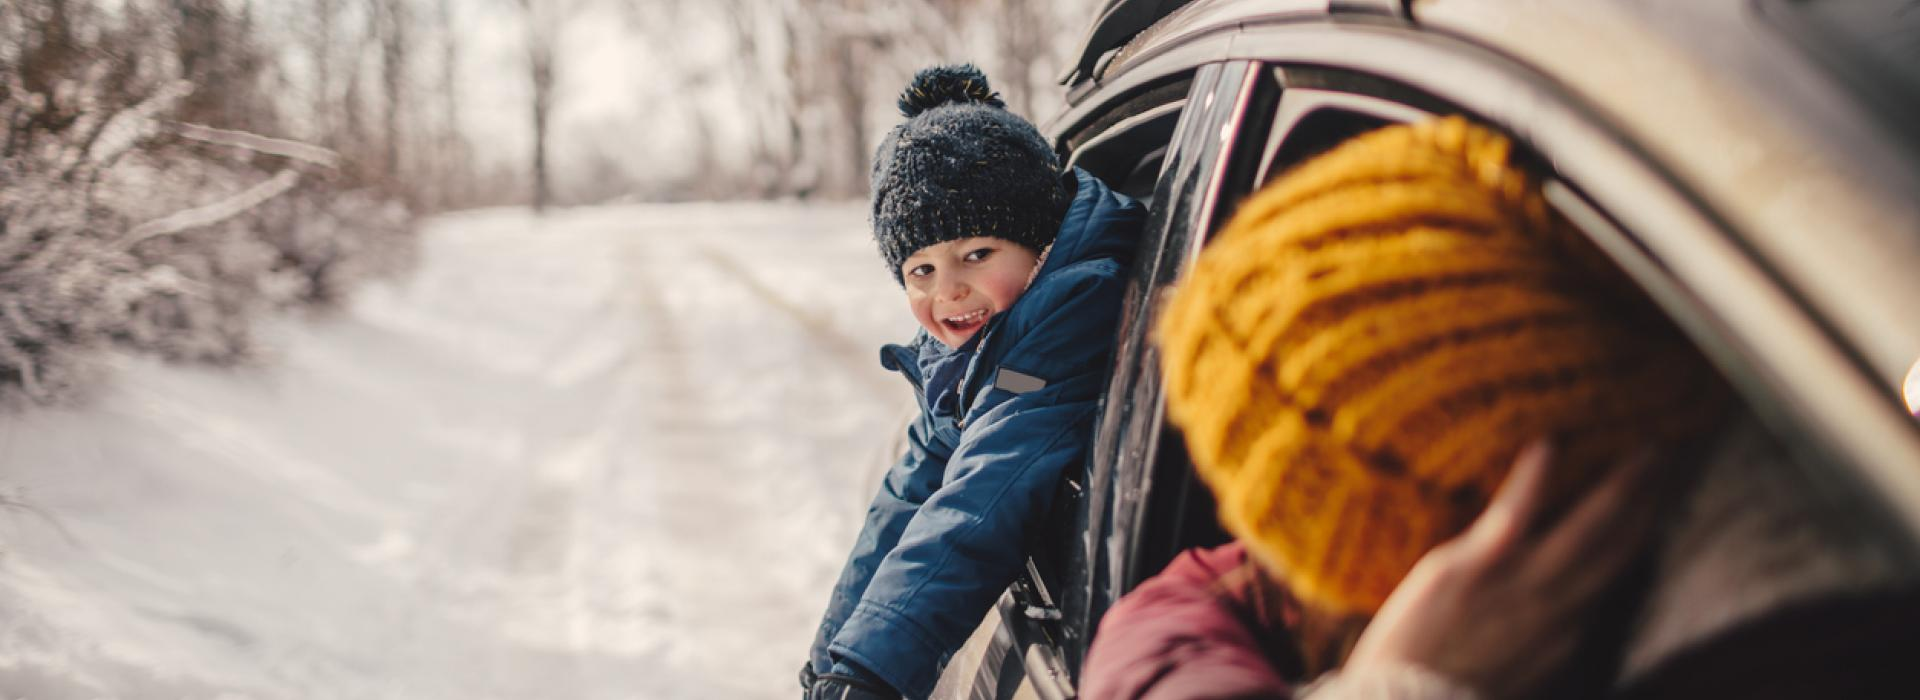 A family on a wintry road trip is pictured taking a break in their car on a country road. A young boy leans out the back window, dressed in a blue snowsuit and stocking cap.